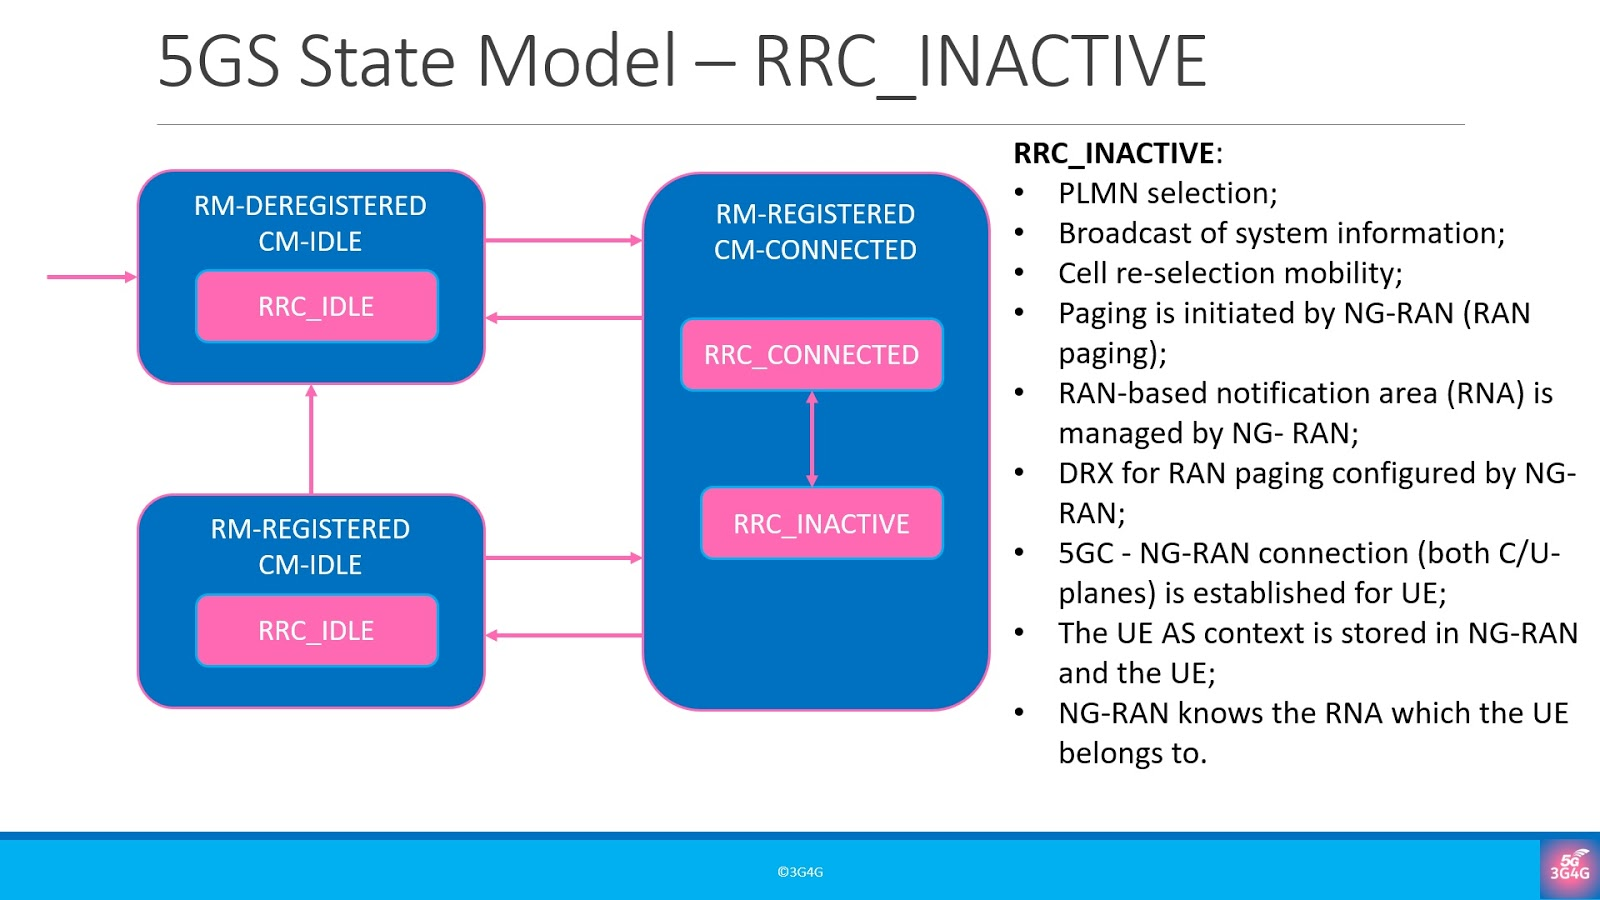 The 3G4G Blog: RRC Inactive State